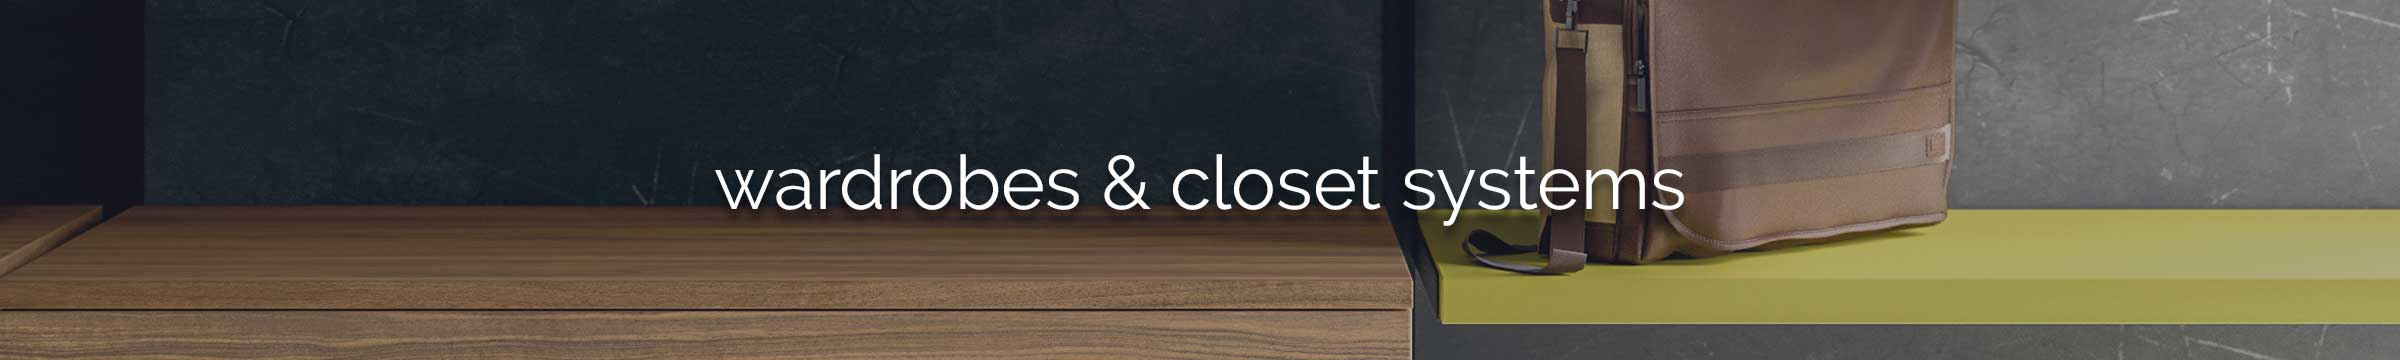 Wardrobes & Closet Systems